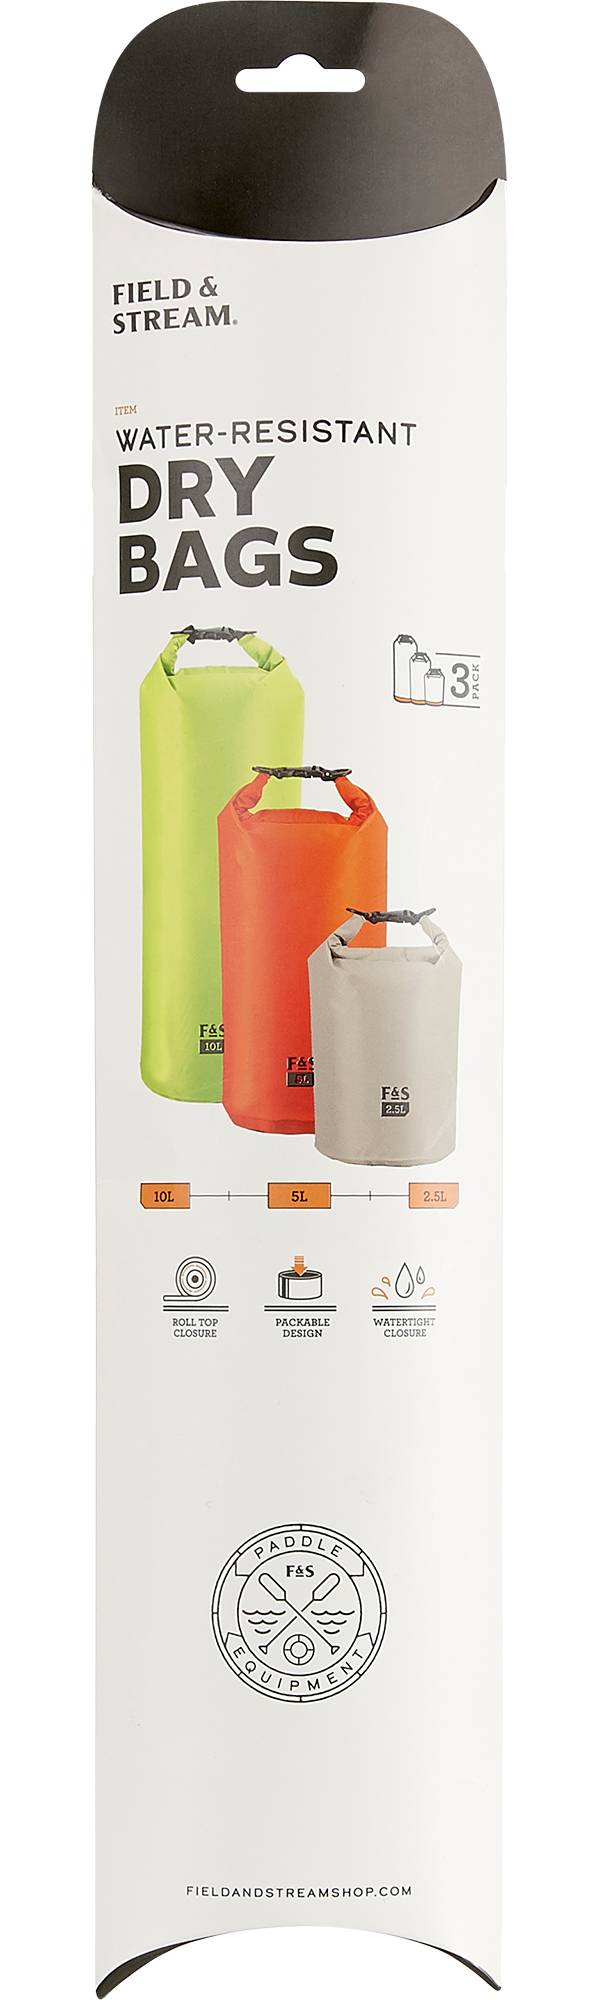 Field & Stream 3-Pack Dry Bags product image